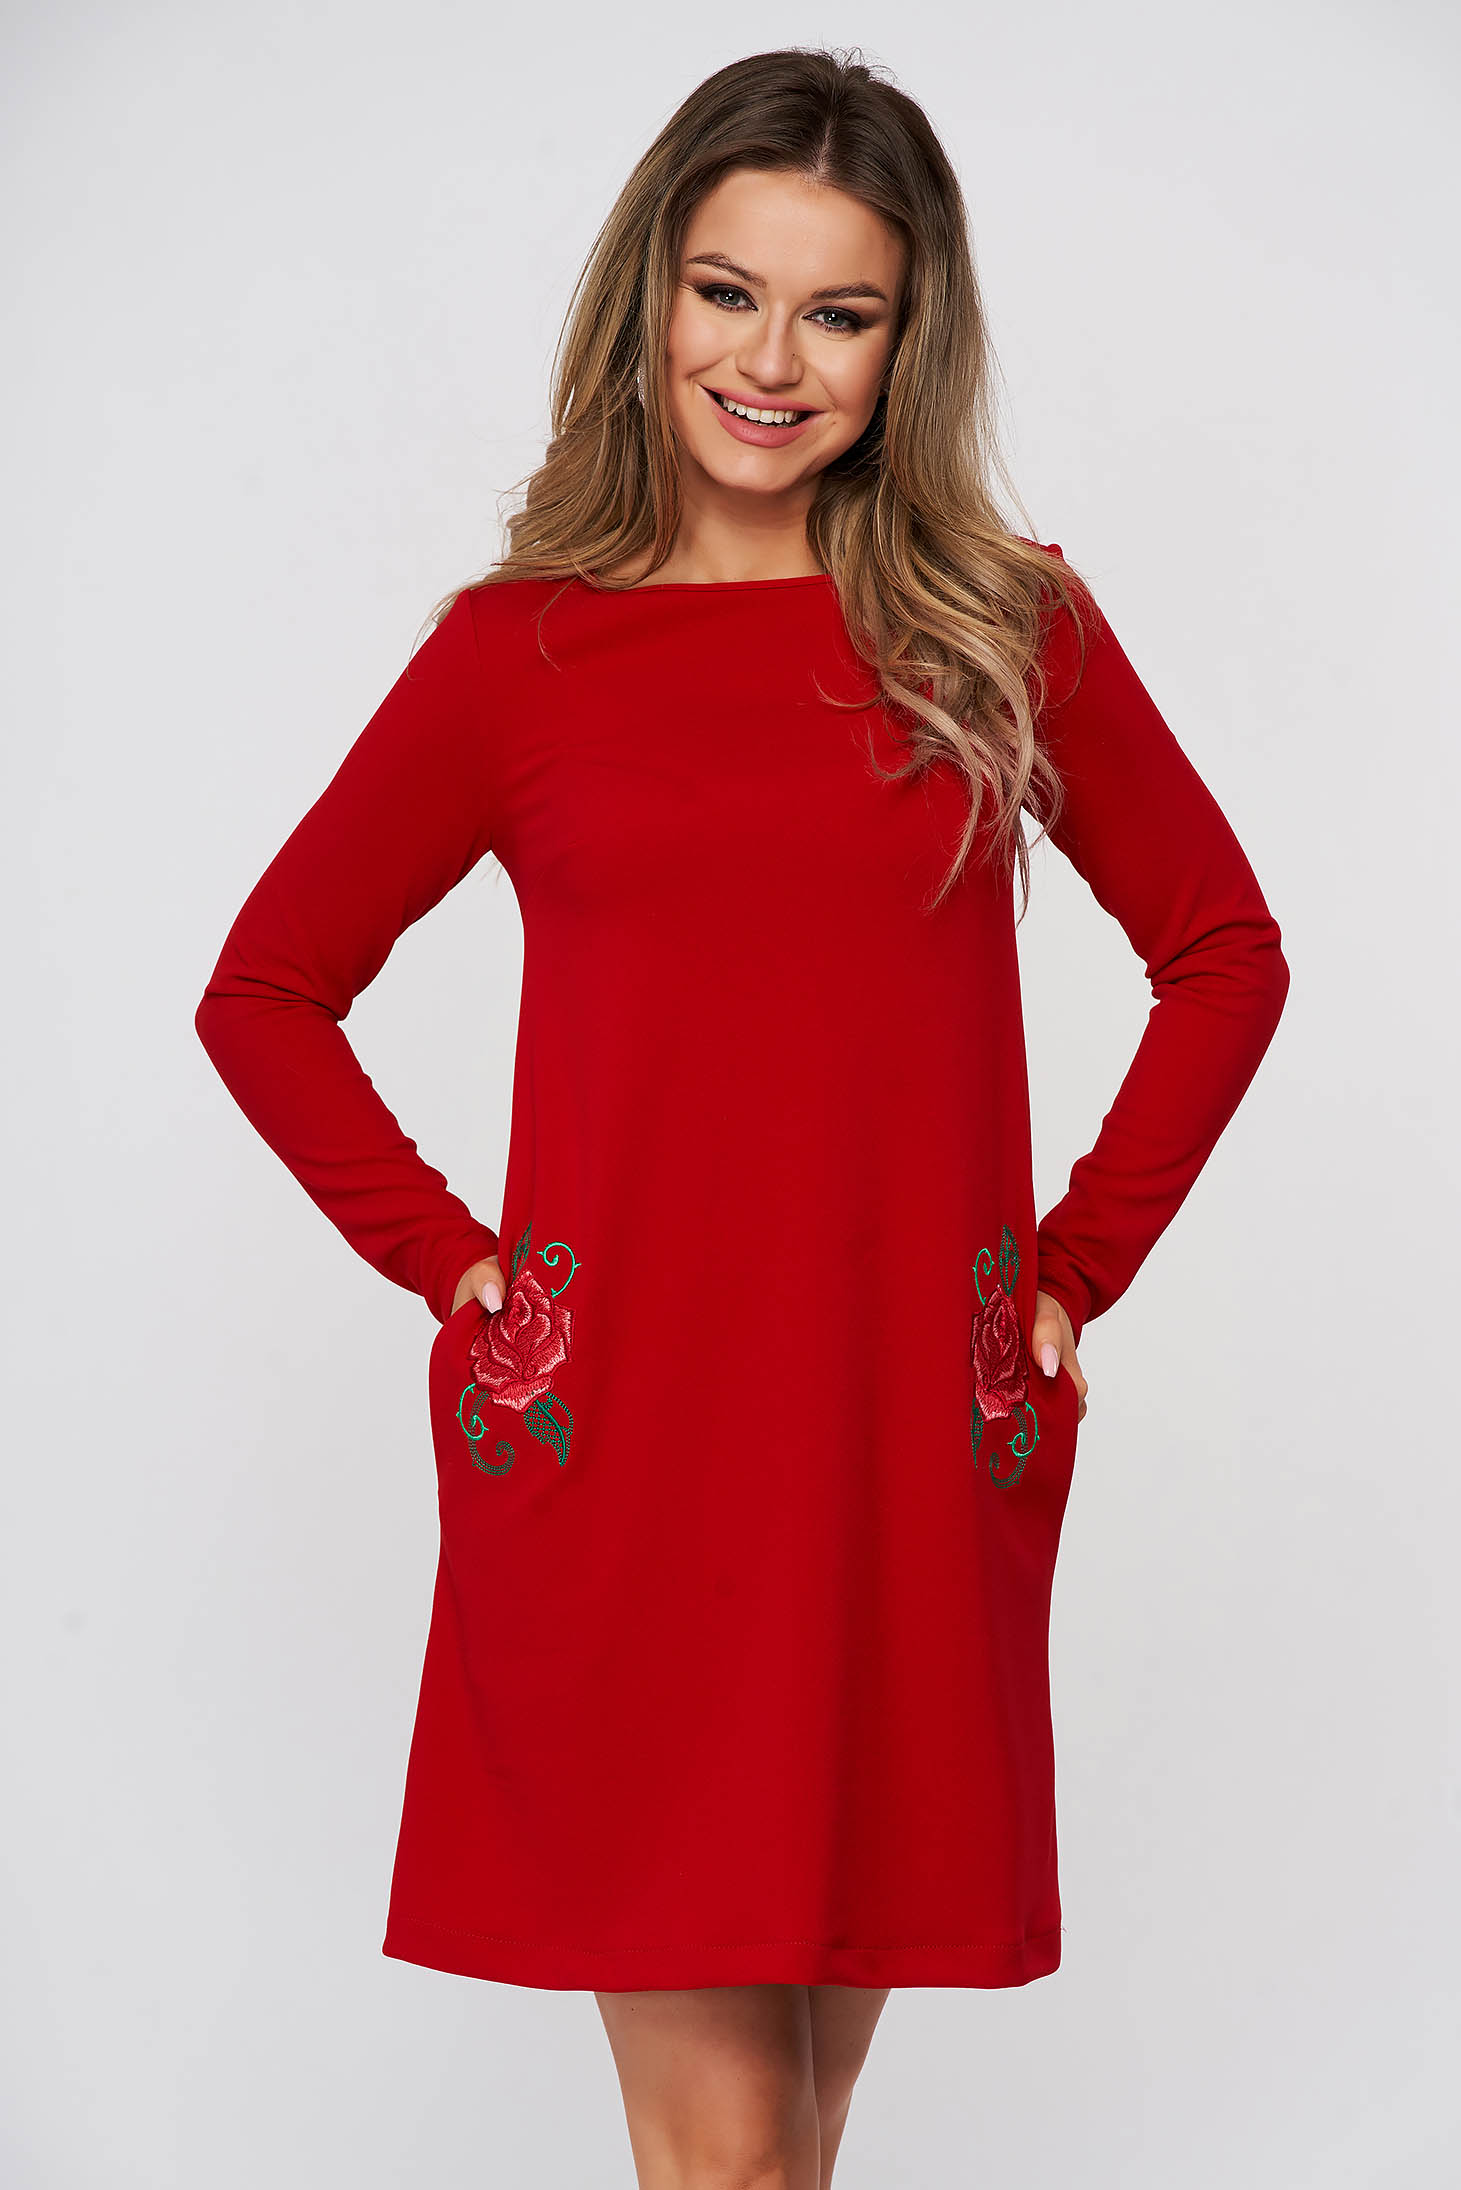 StarShinerS red dress short cut daily with pockets straight